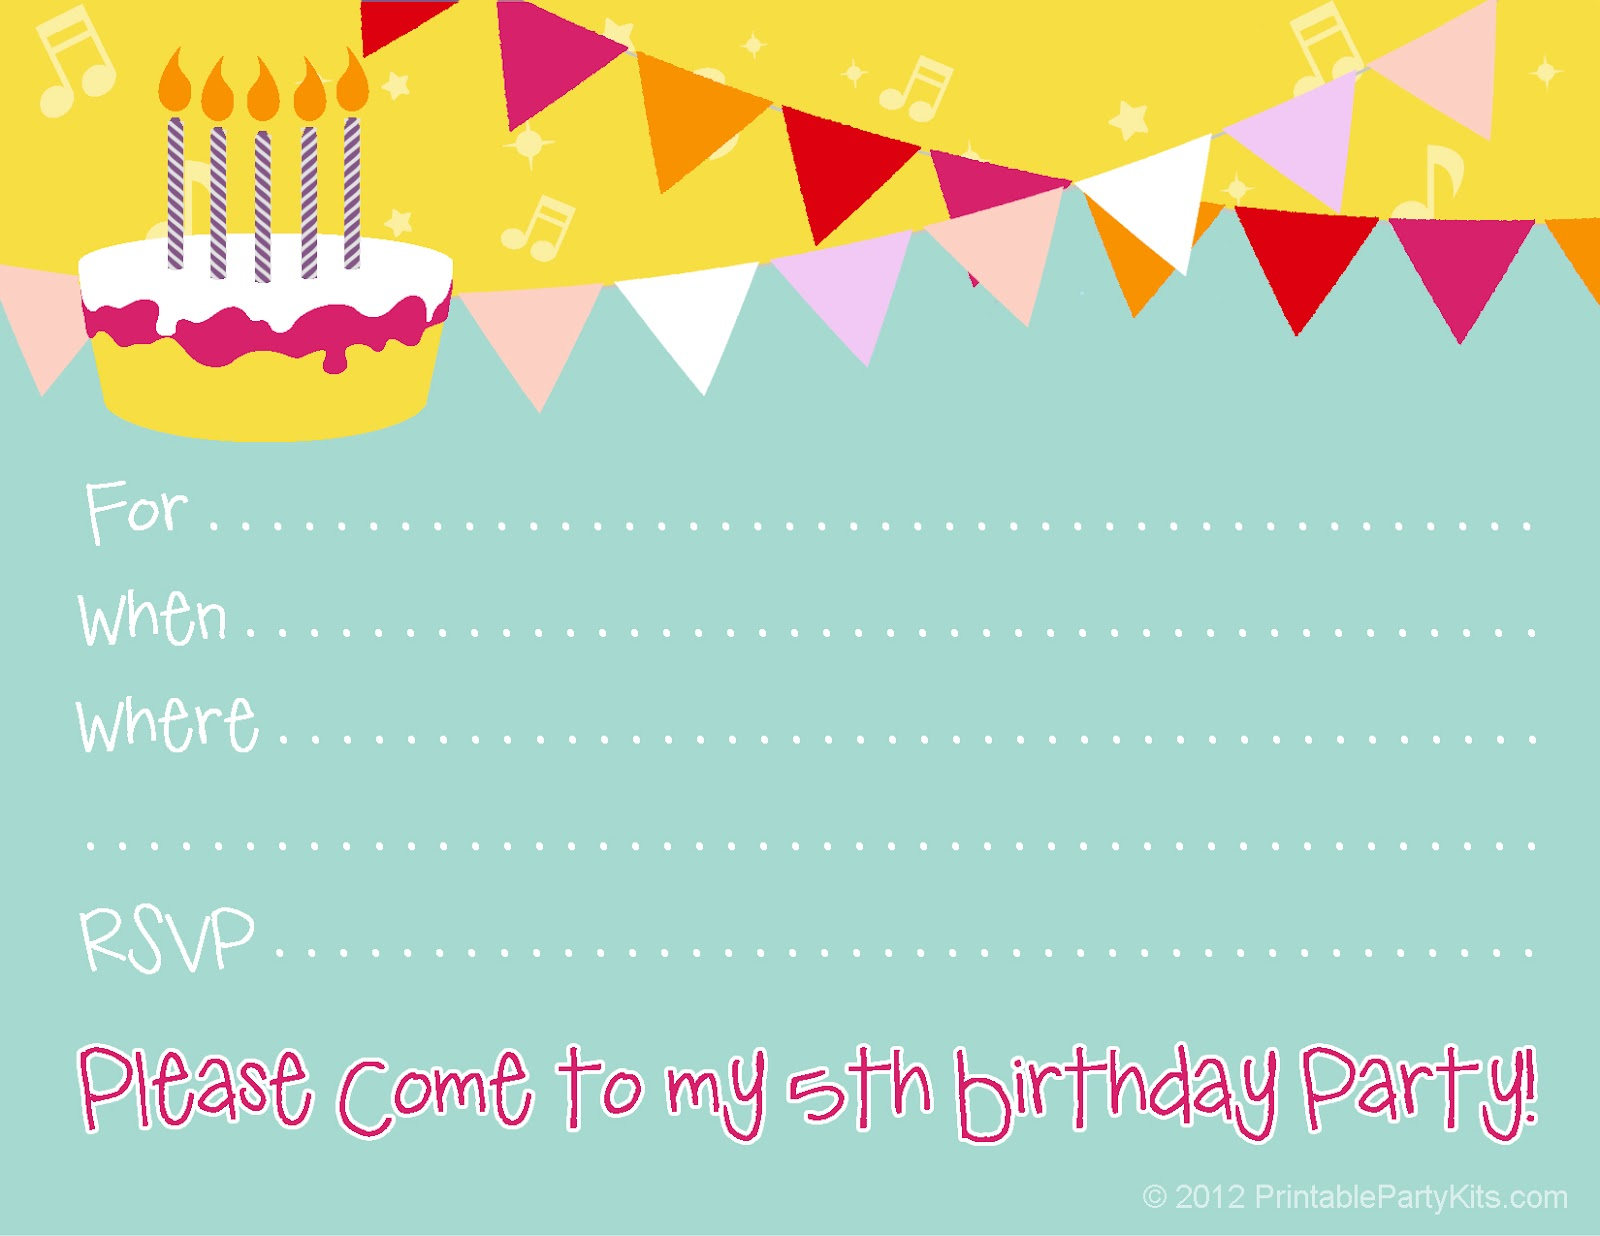 13th birthday party invitations templates free ; Birthday-Party-Invitation-Templates-Free-Download-to-get-ideas-how-to-make-your-own-birthday-Invitation-design-1